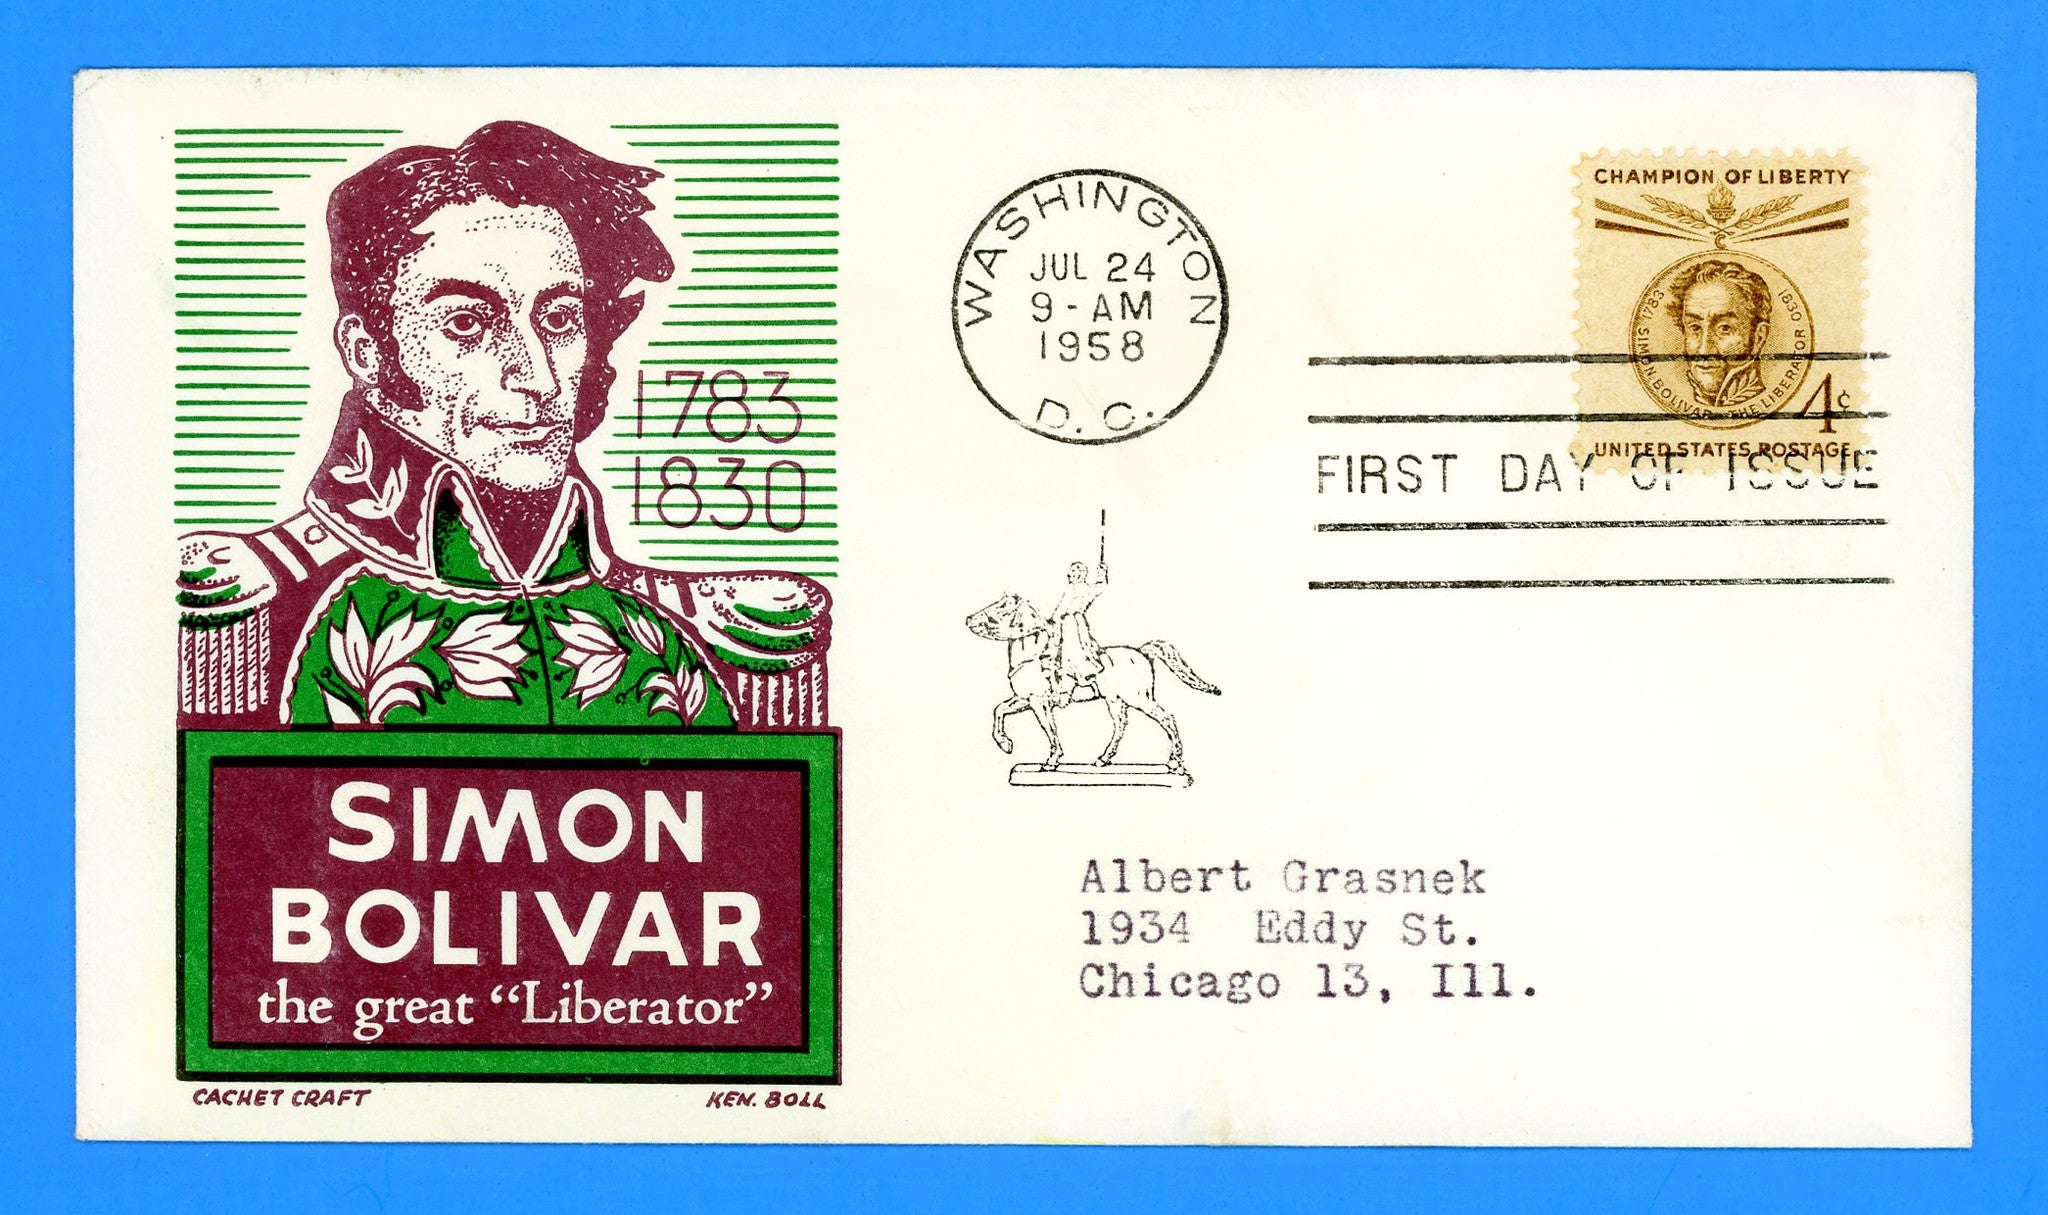 Scott 1110-11 Simon Bolivar Champion of Liberty Set of Two First Day Covers by Cachet Craft/Boll